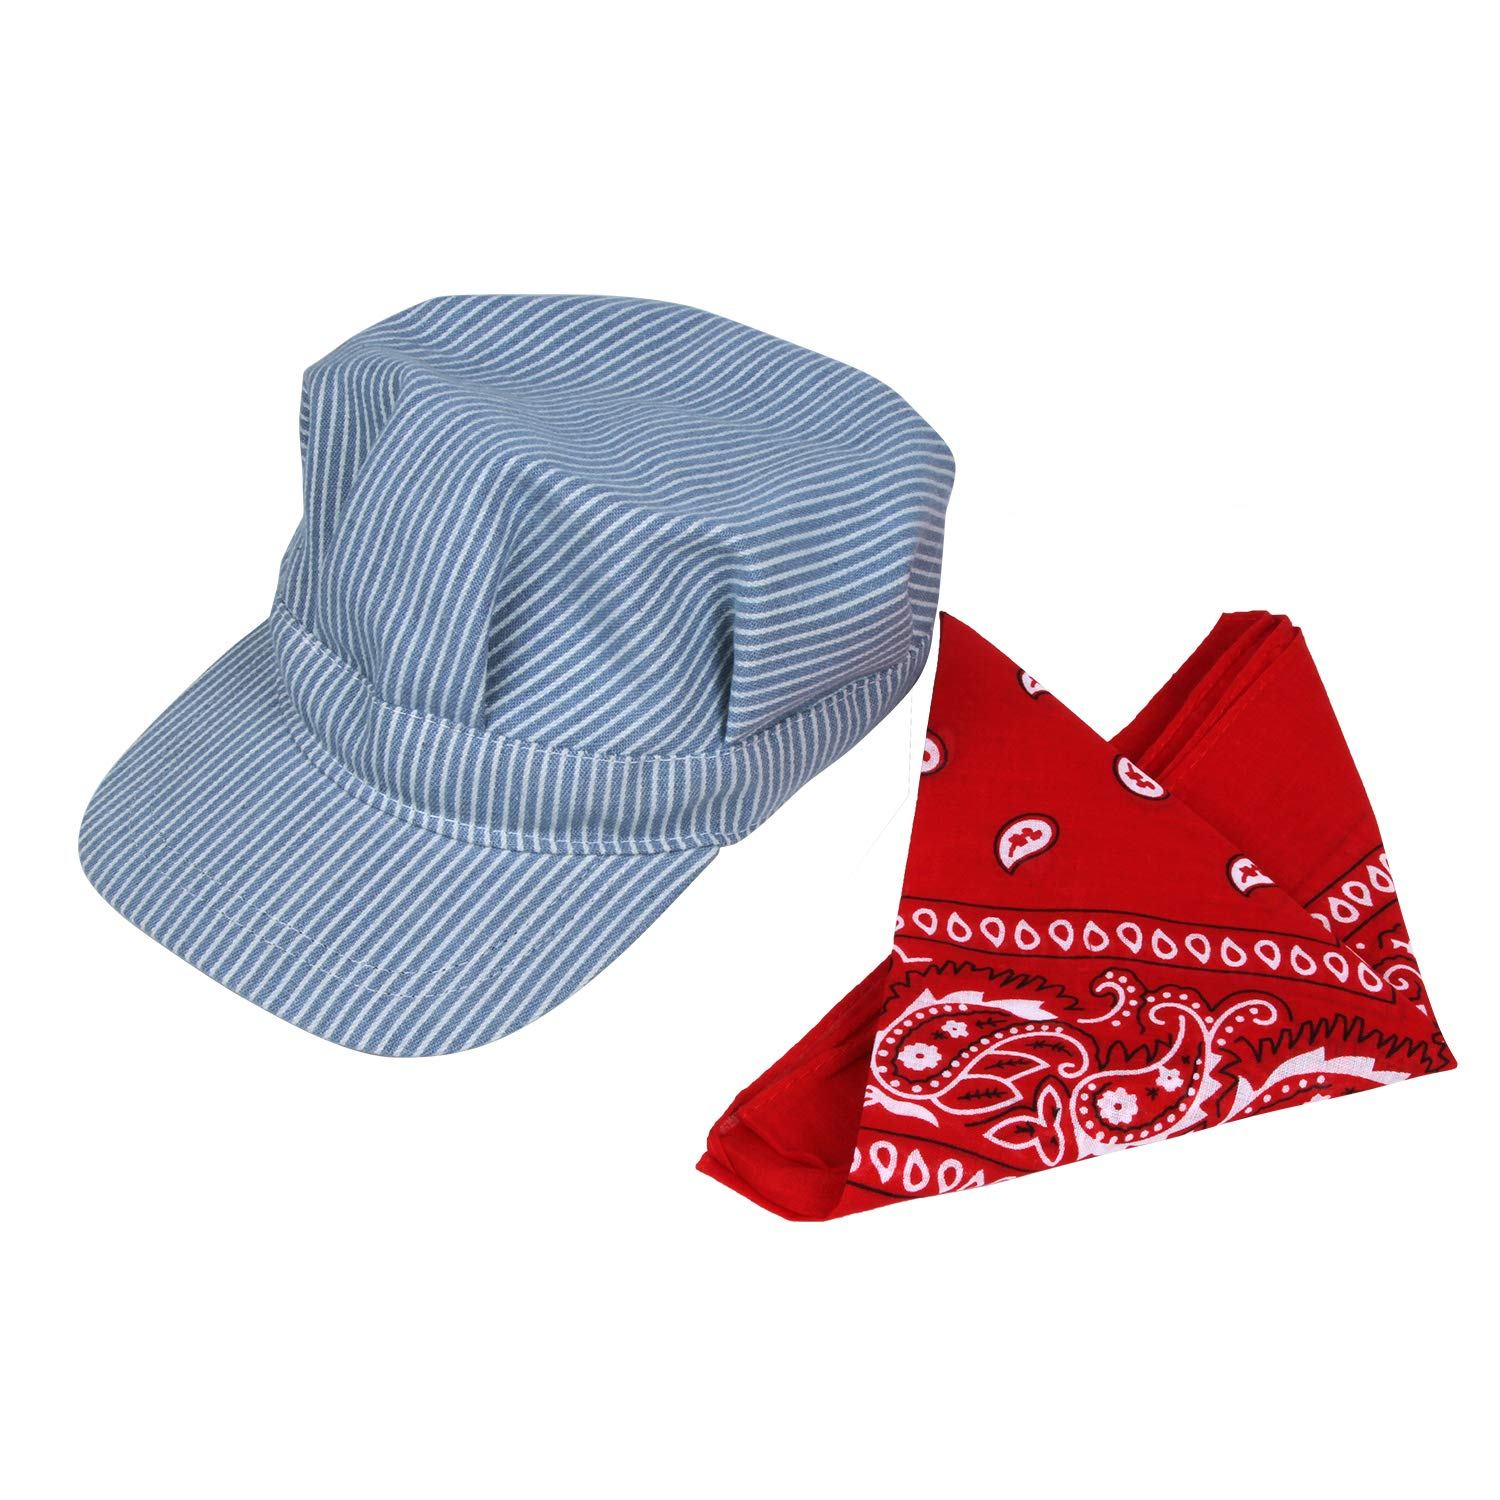 Classic Train Engineer Conductors Adjustable Cap and Bandana Set Youth Size